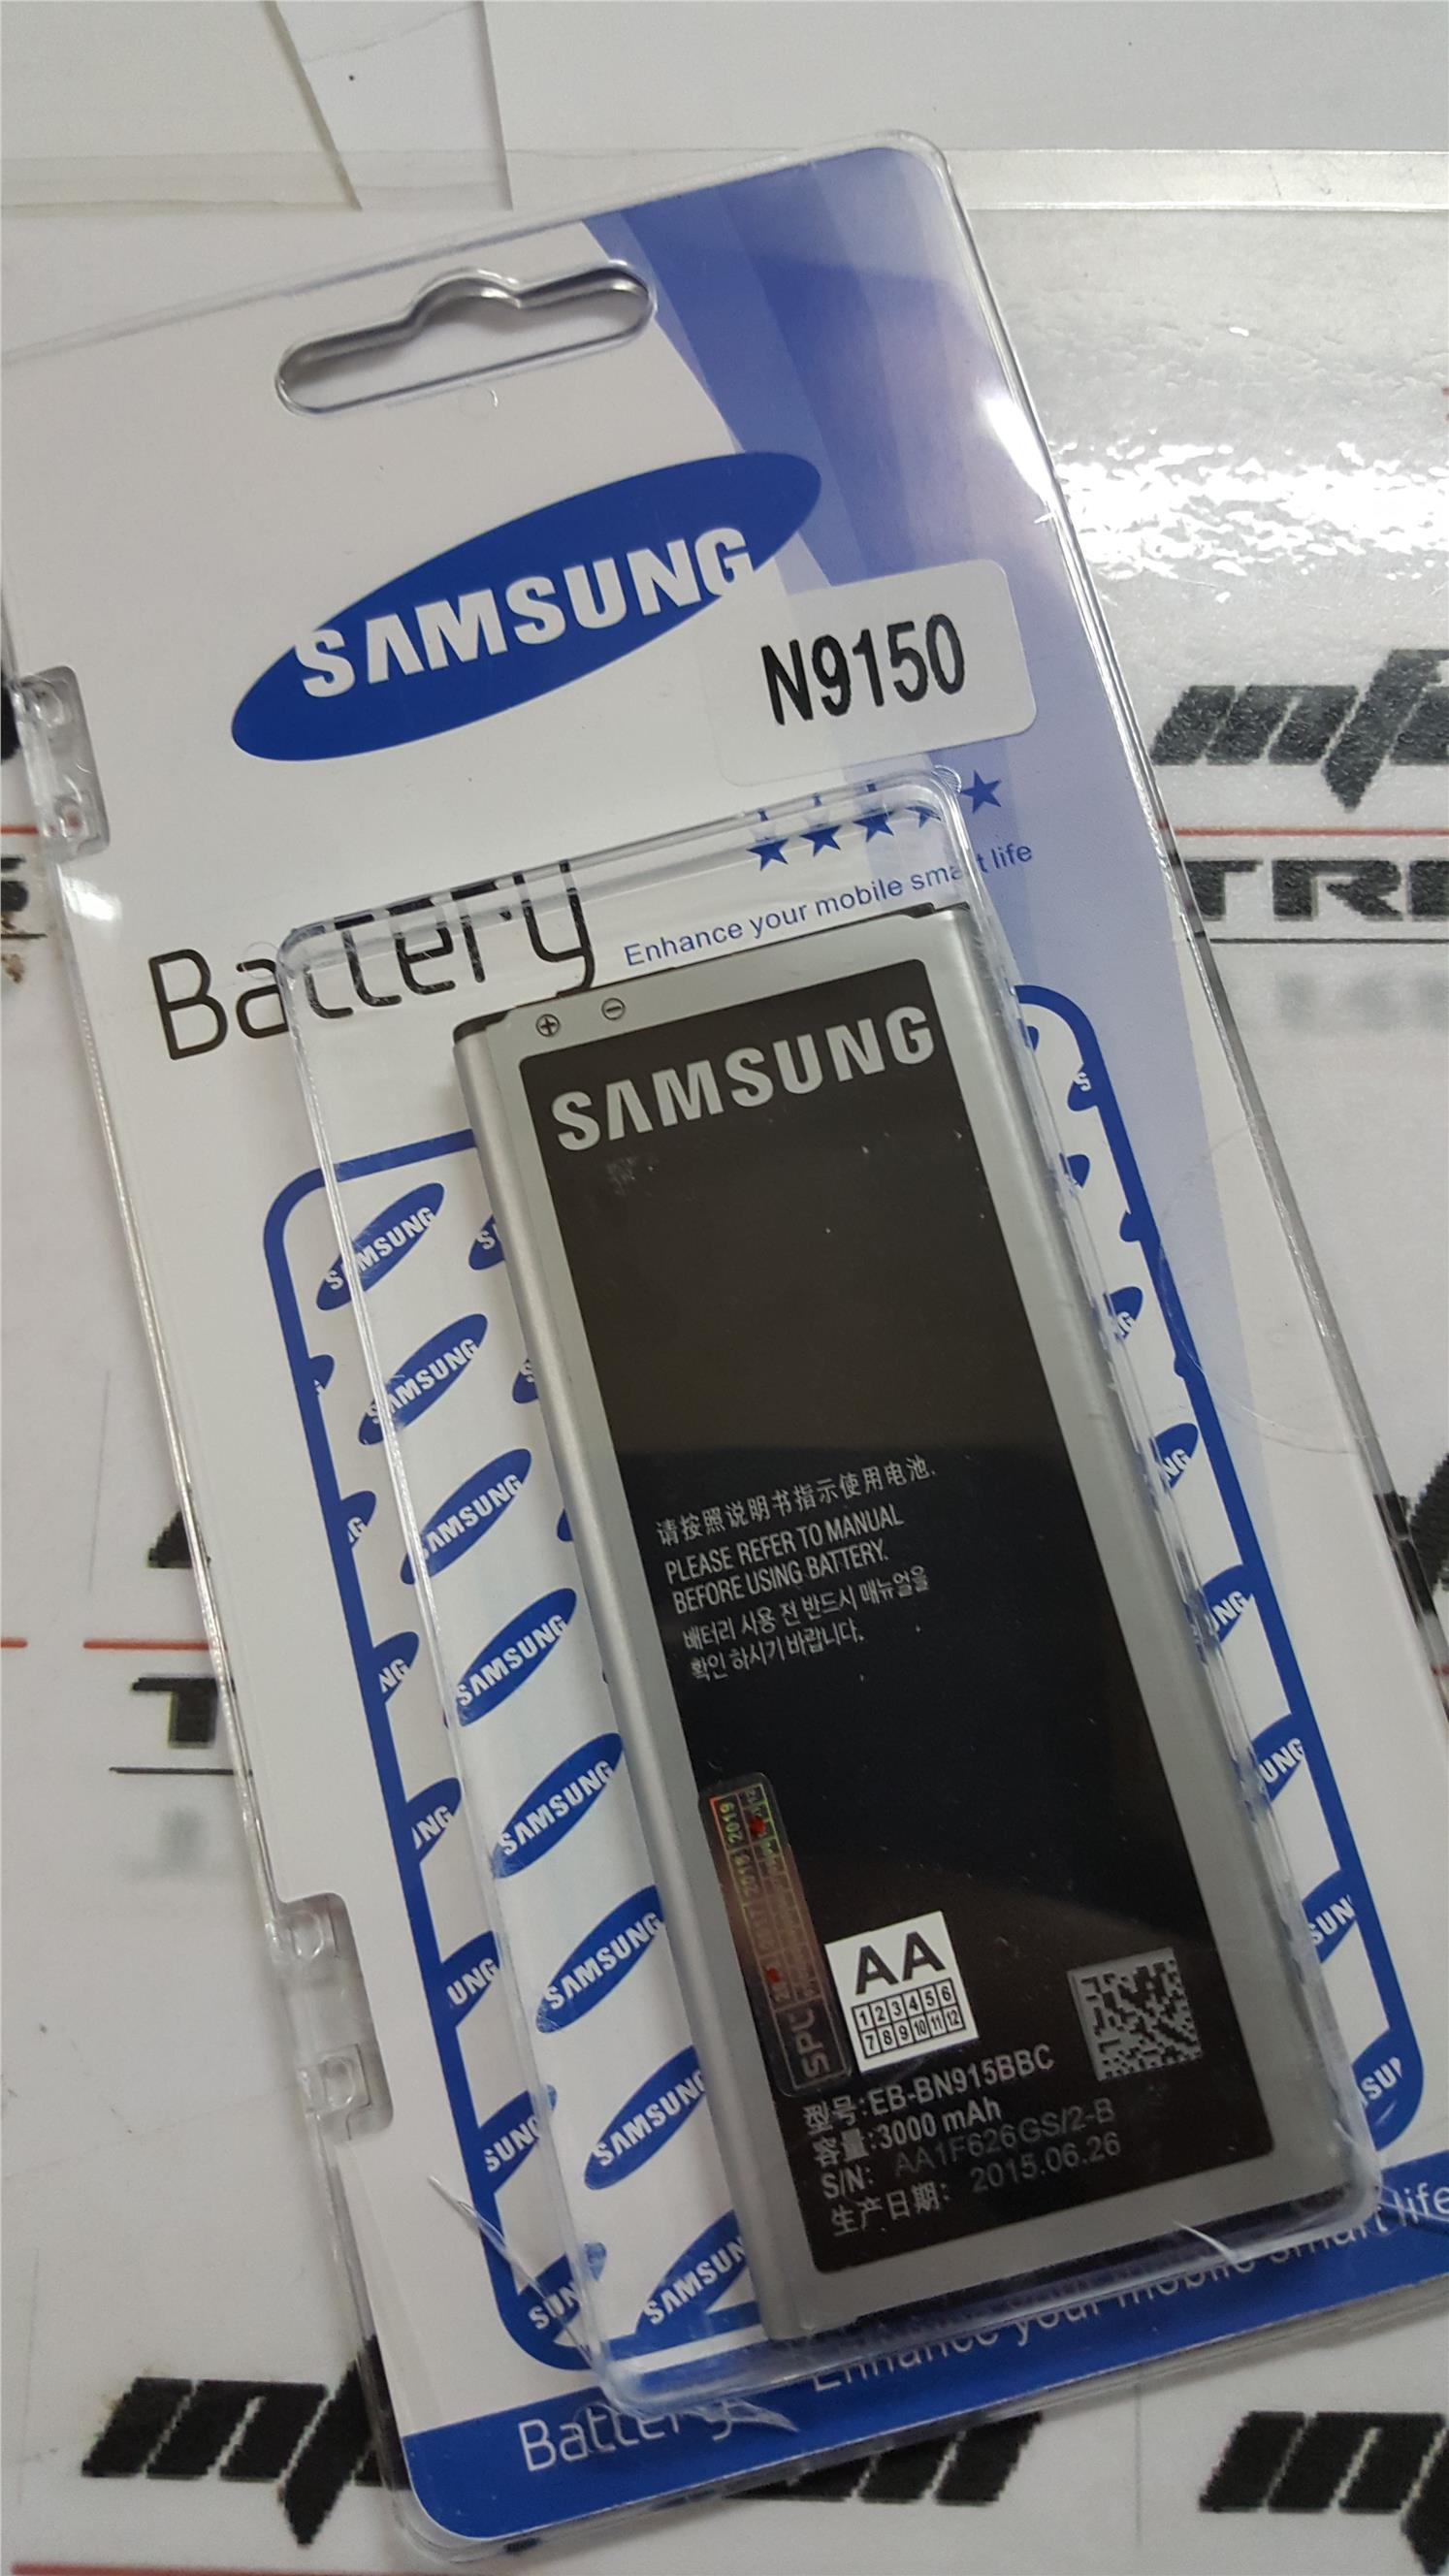 SAMSUNG GALAXY NOTE EDGE N9150 BATTERY GRADE AAA